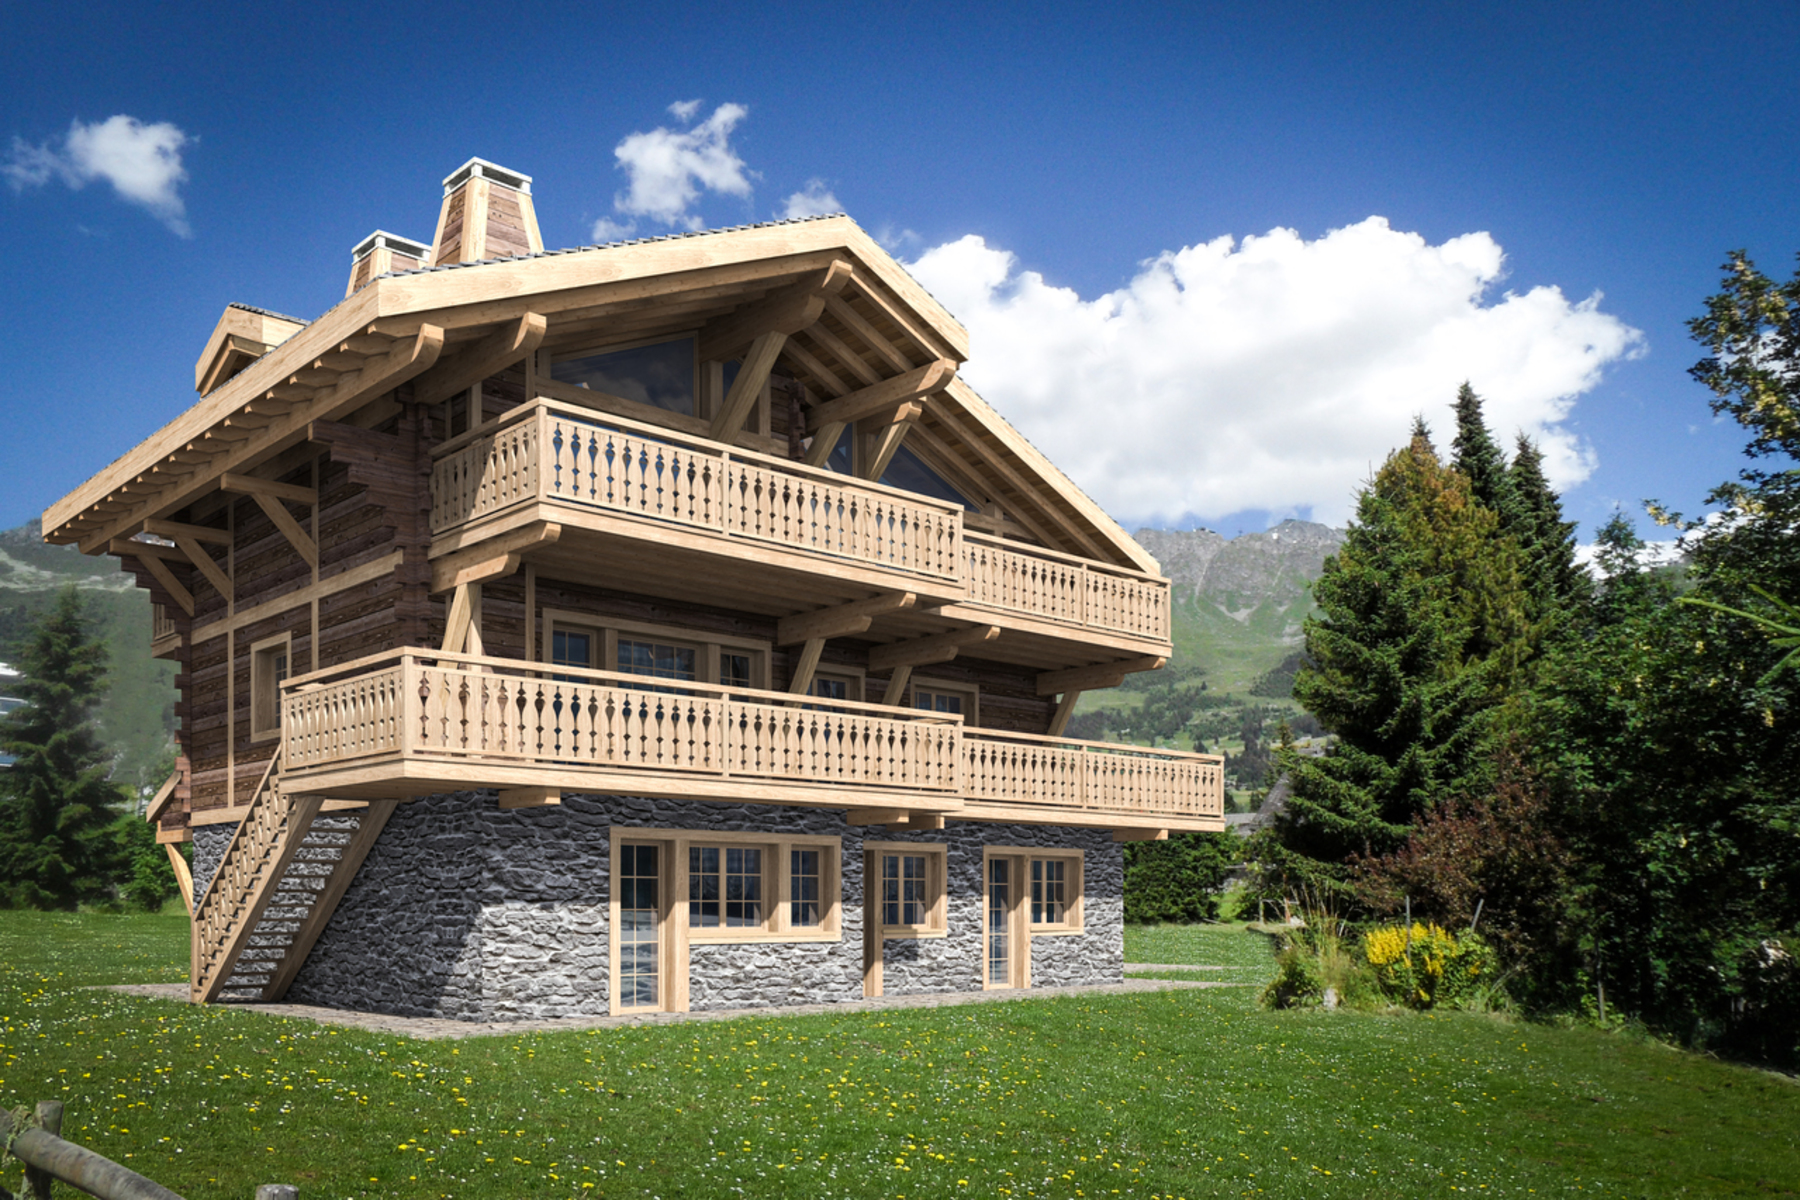 Single Family Home for Sale at Chalet SOMMETS Verbier, Valais, 1936 Switzerland